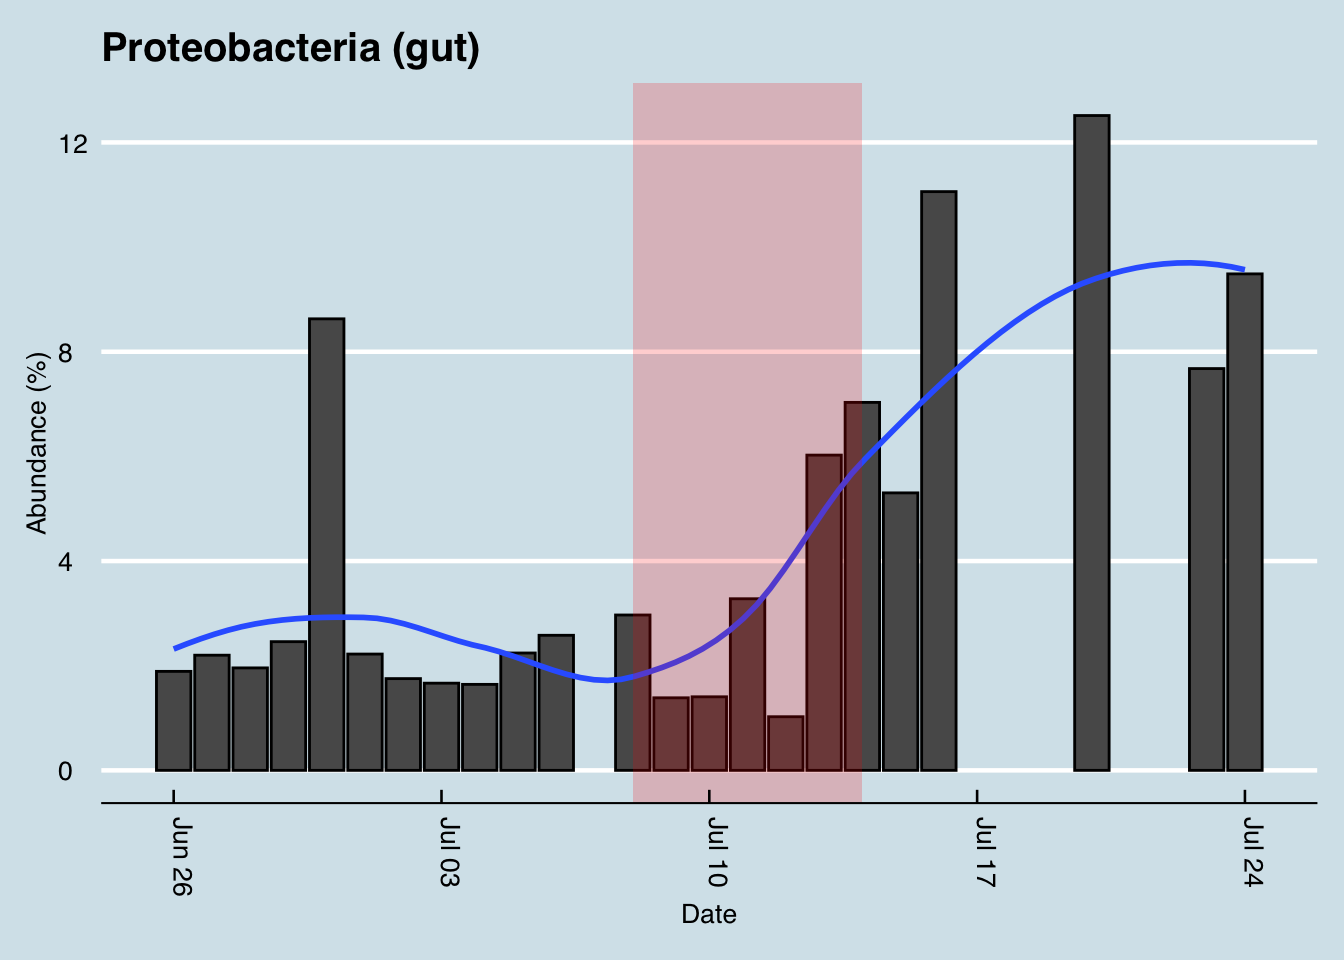 Gut Proteobacteria abundances rose during a period of heavy travel. Note: zero abundances are days with no samples available.